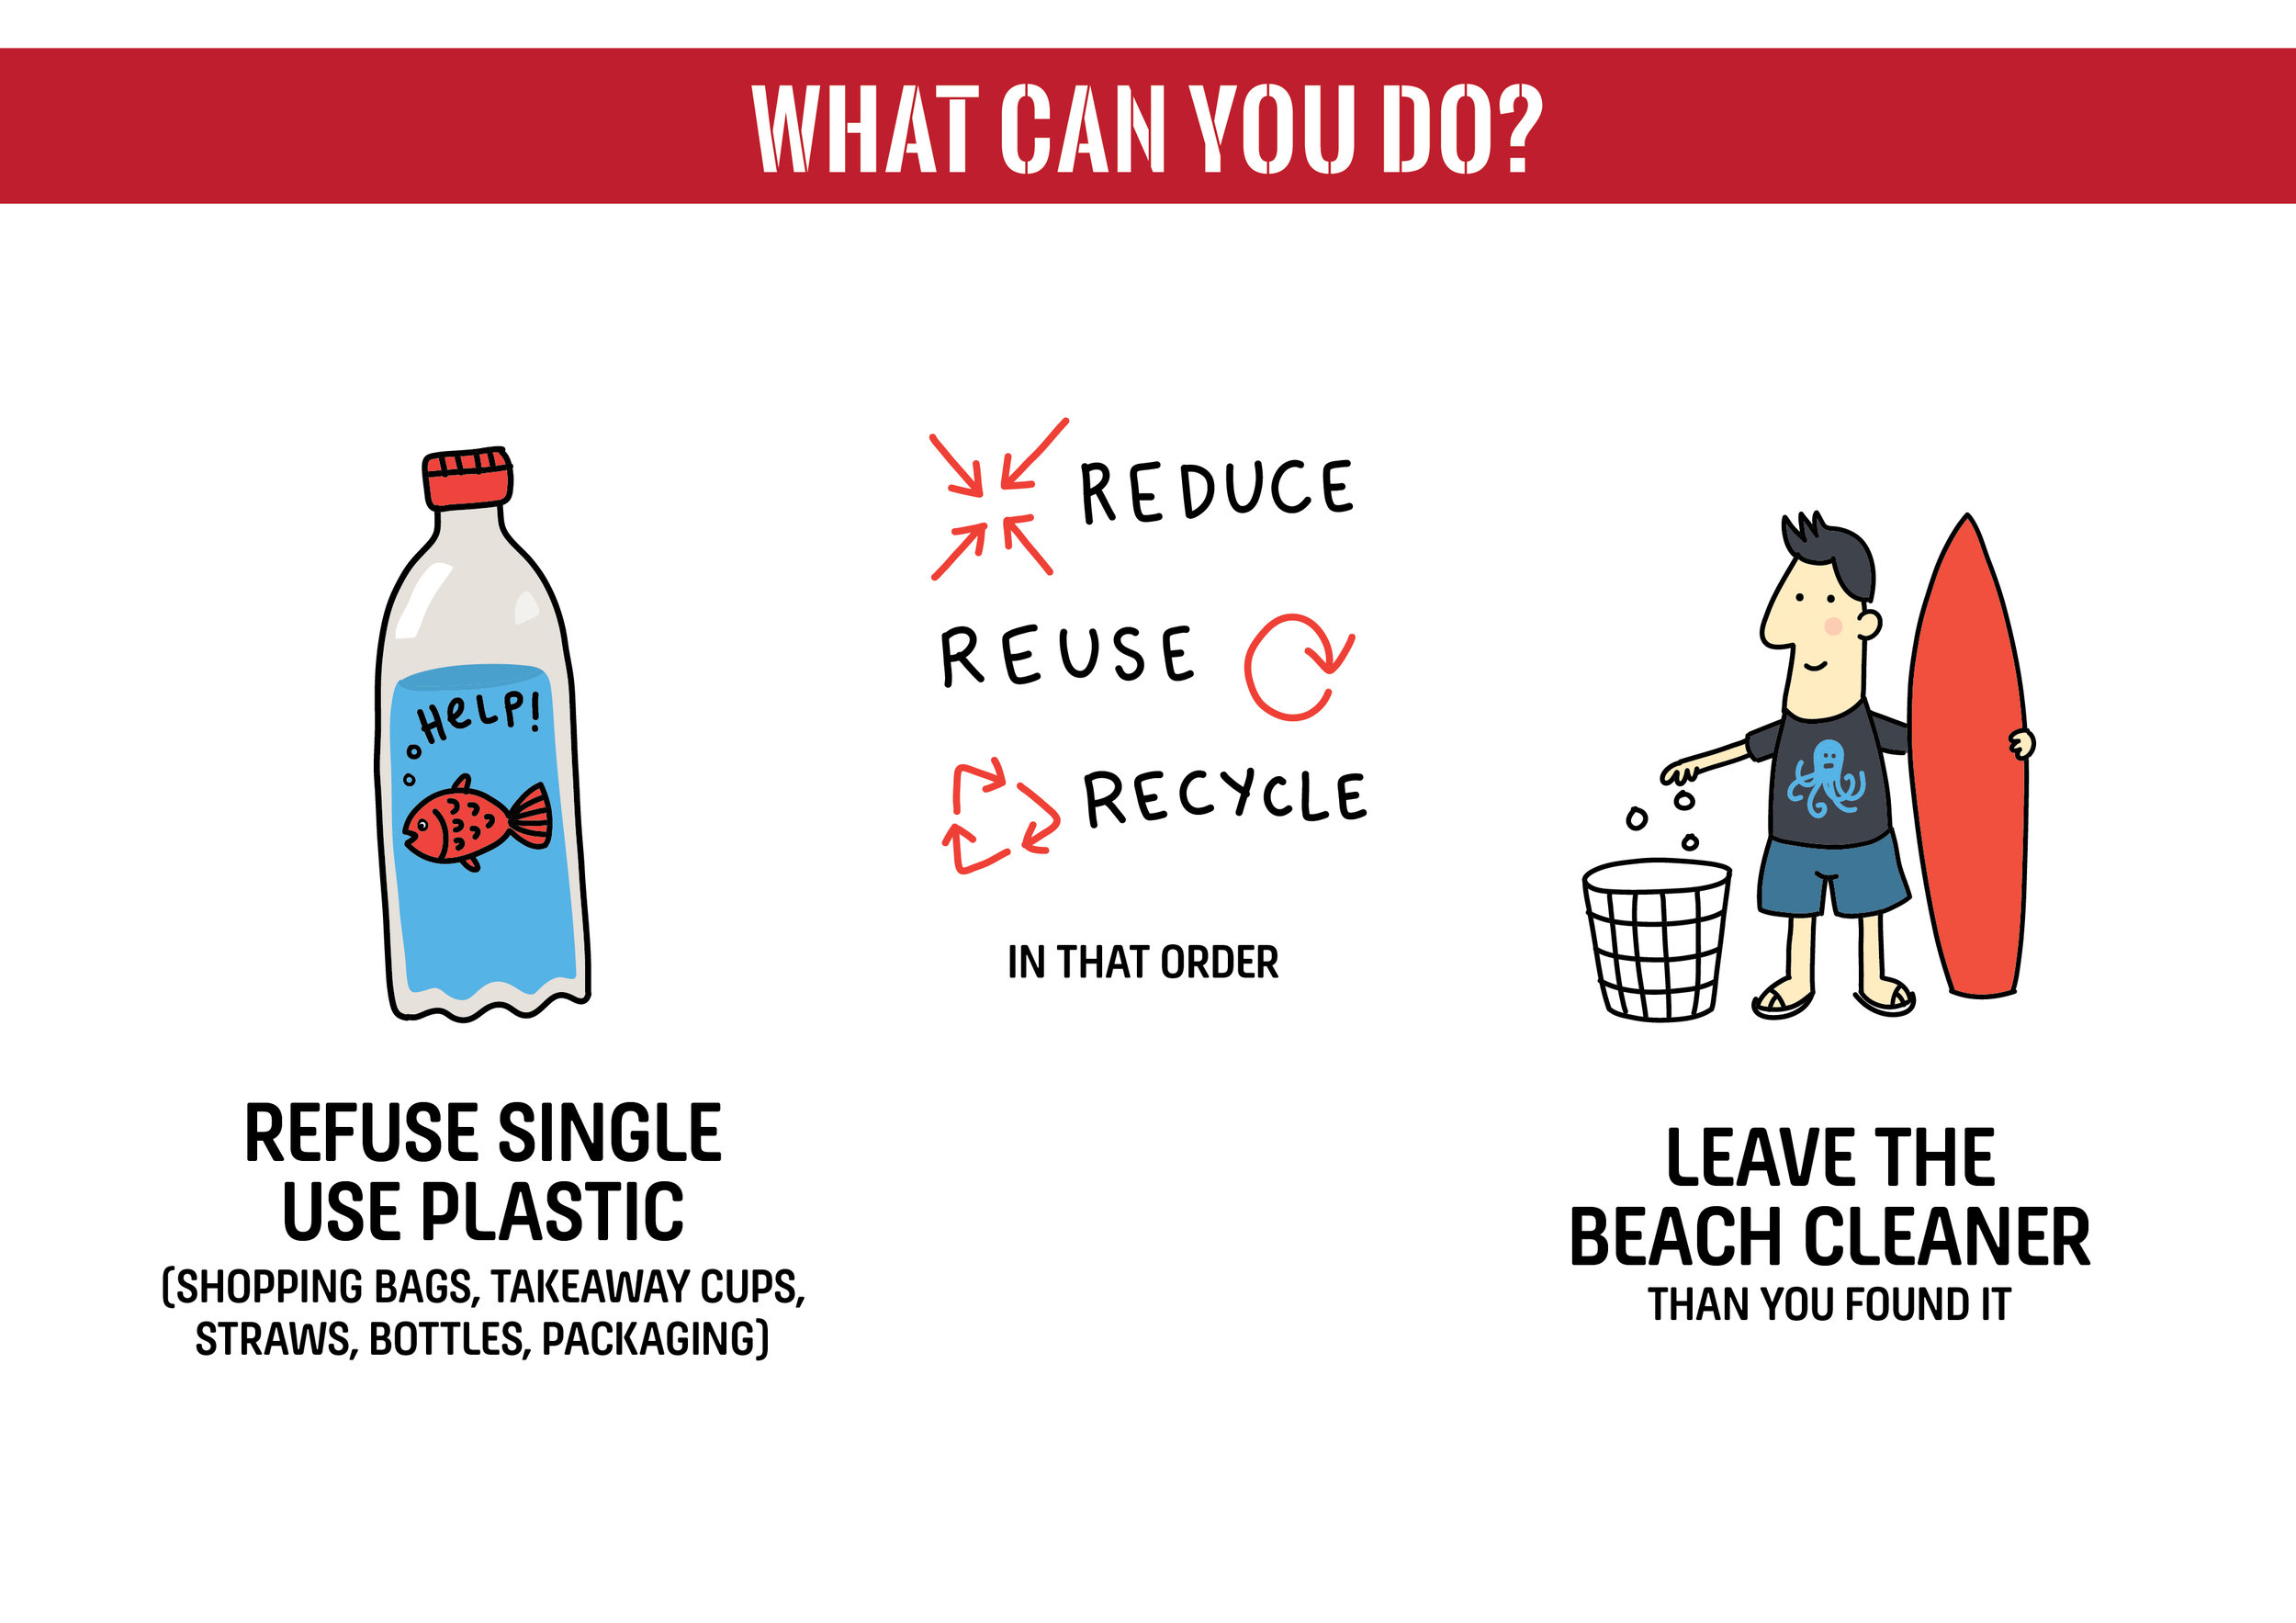 Reduce Plastic Pollution - Refuse, reduce, reuse, recycle.Be a conscious consumer. Avoid unnecessary items and items of convenience. Recognise that single-use bags and straw bans are an important first step, but must be part of a much more fundamental shift away from single-use, disposable items across our economy.Always leave the beach cleaner than you found it.